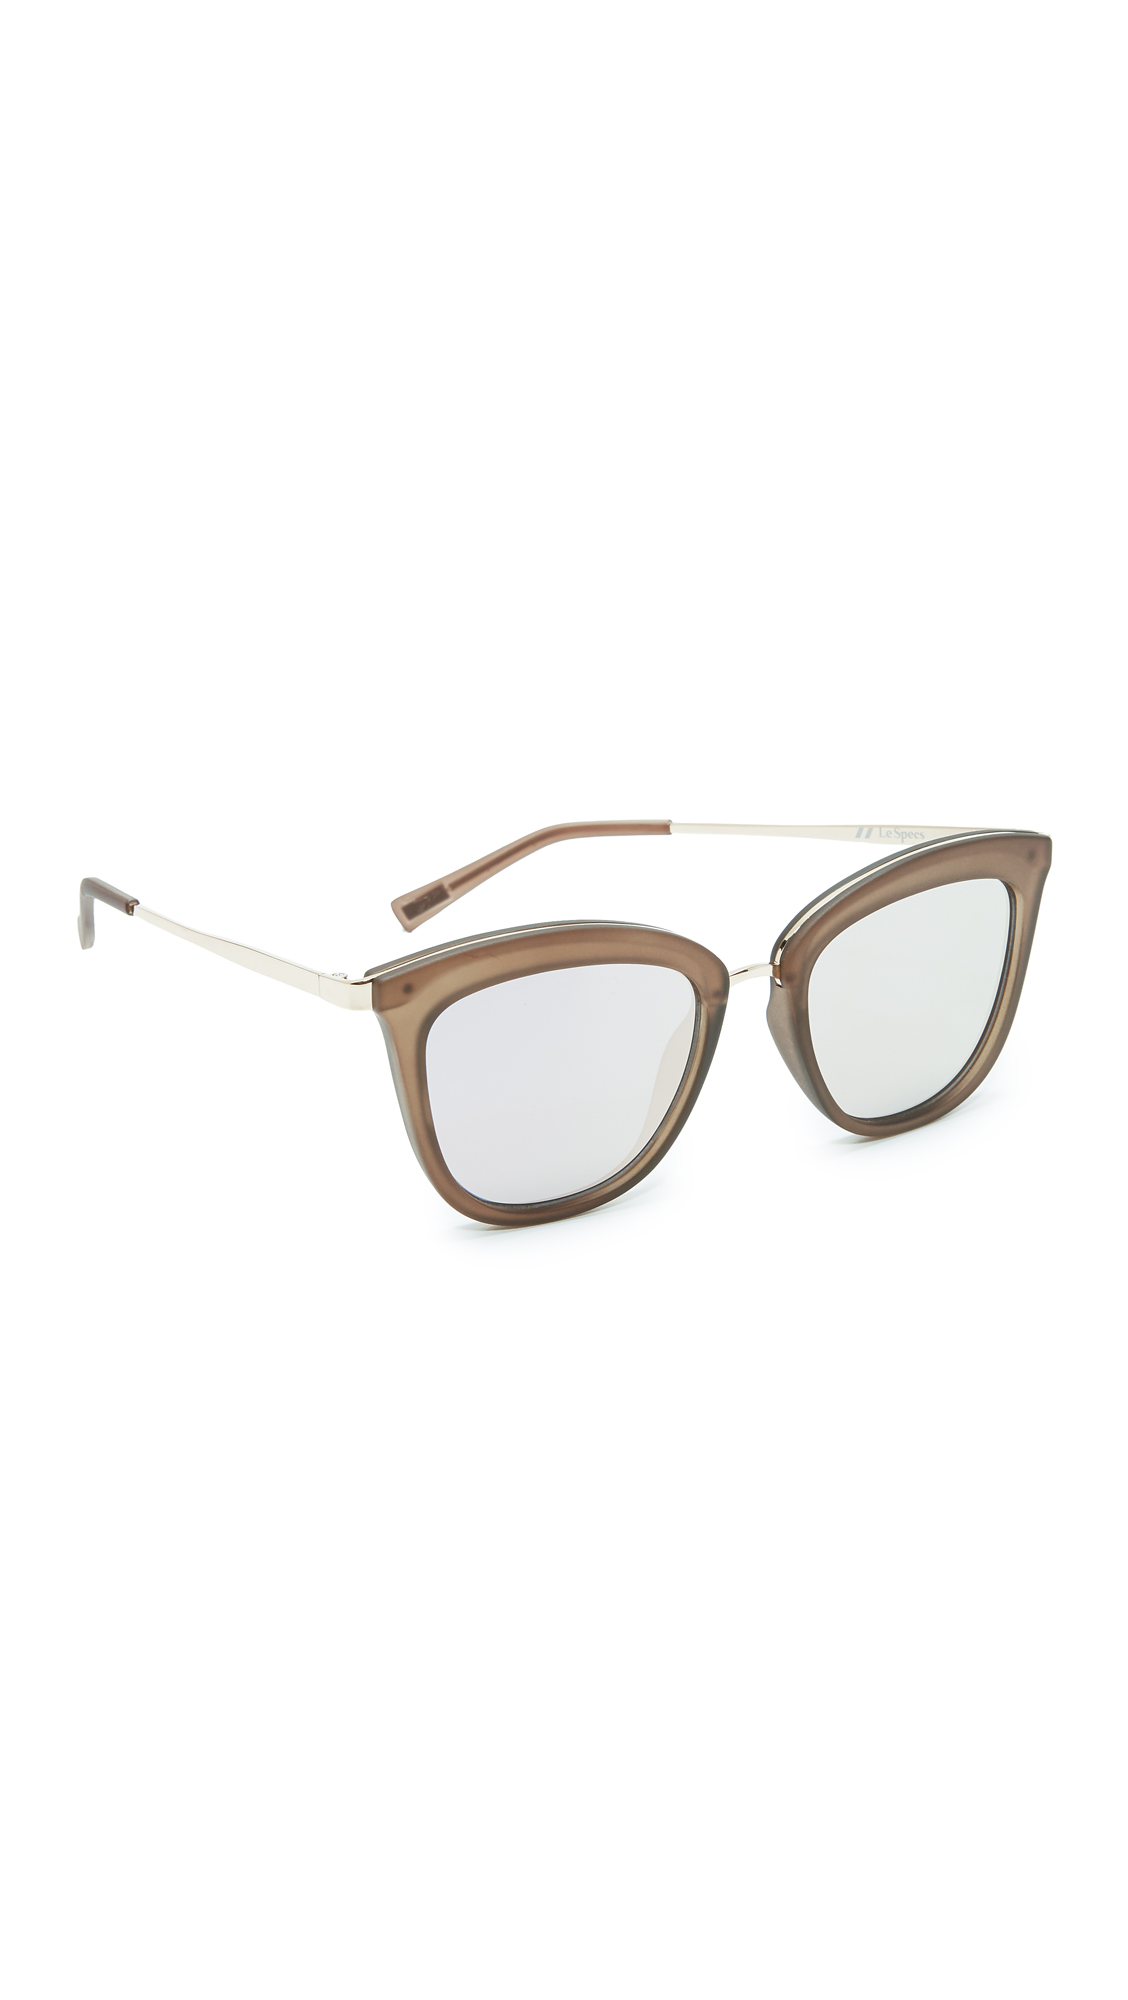 These tinted, mirrored Le Specs sunglasses are framed in frosted acetate and trimmed with gold tone metal at the top rim. Soft envelope case included. Square frame. Non polarized lenses. Imported, China. Measurements Width: 5.75in / 14.5cm